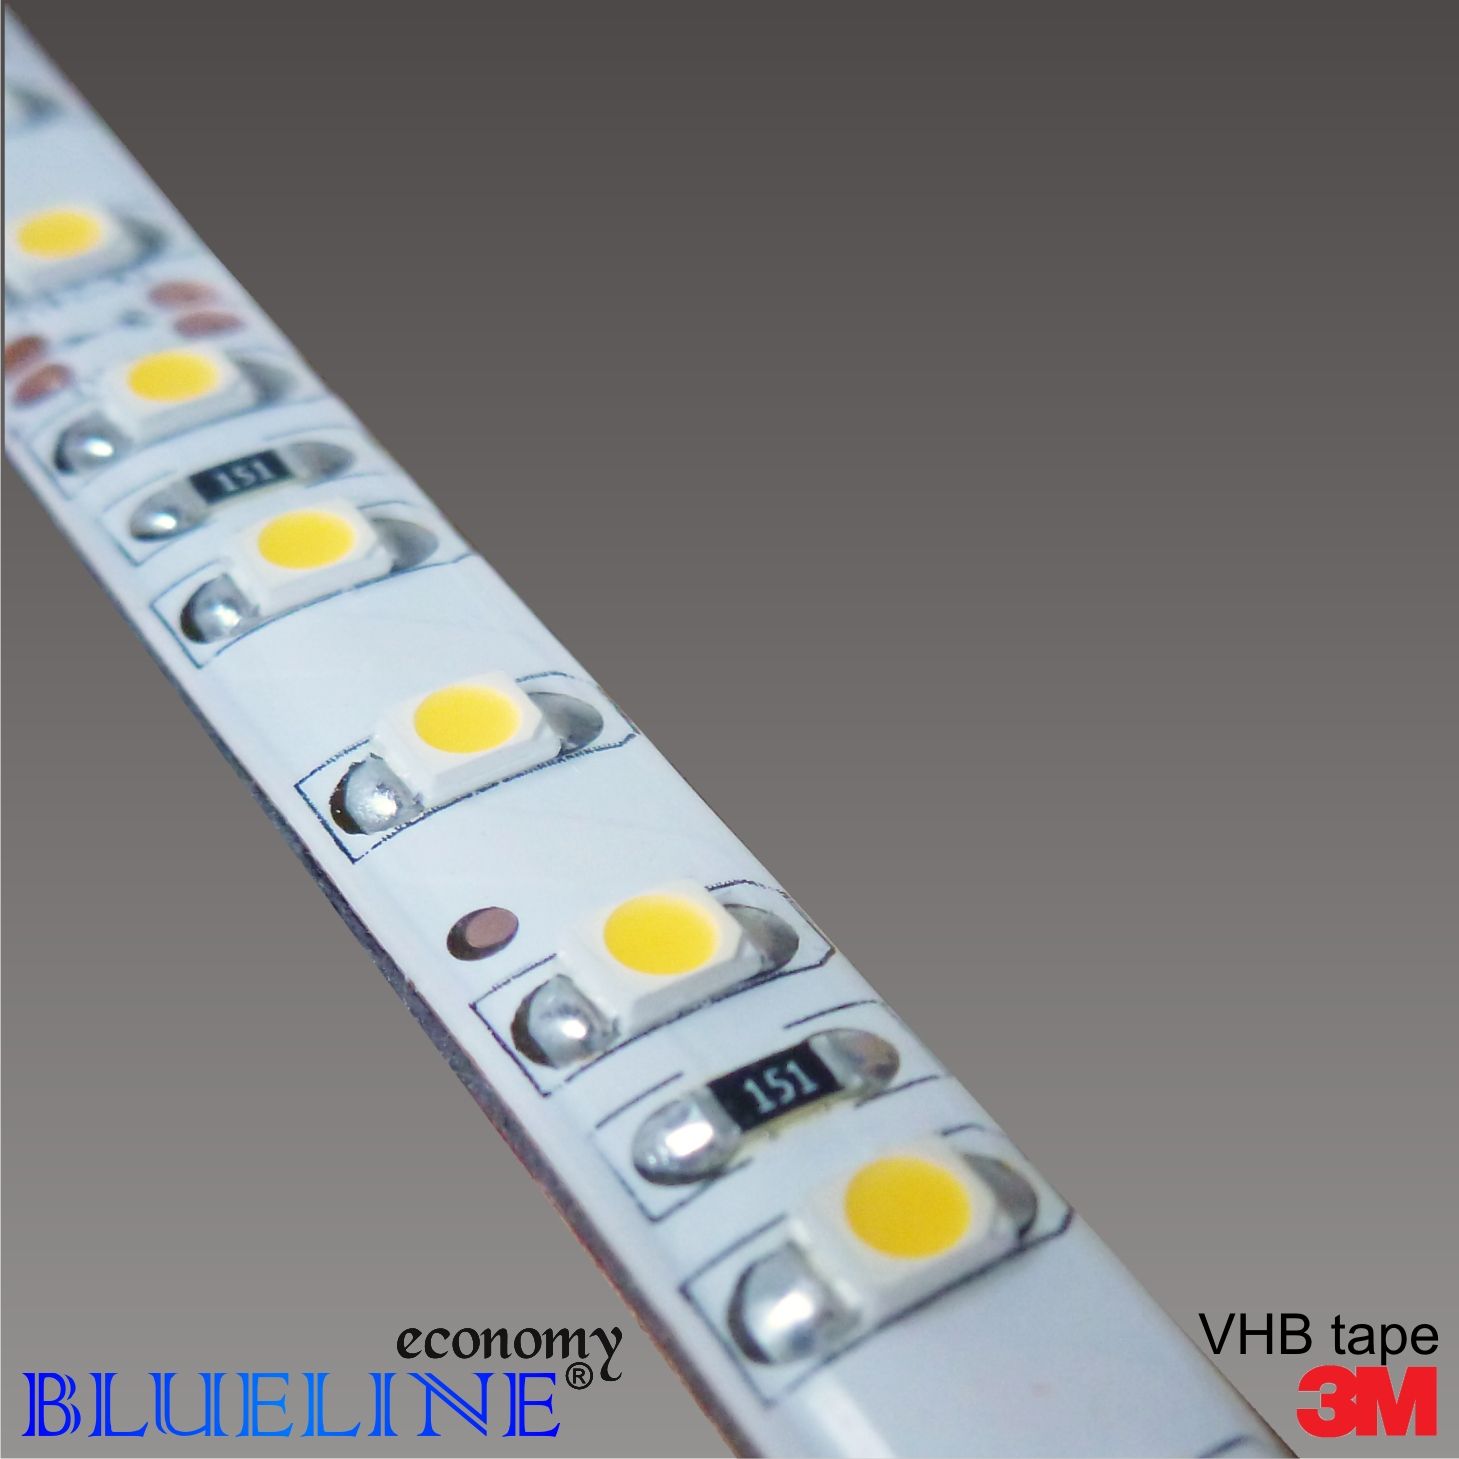 Blueline_economy_LED_Flex_strip_IP54_epoxy_extra_warm_wit-_single_color_-_2600K-1